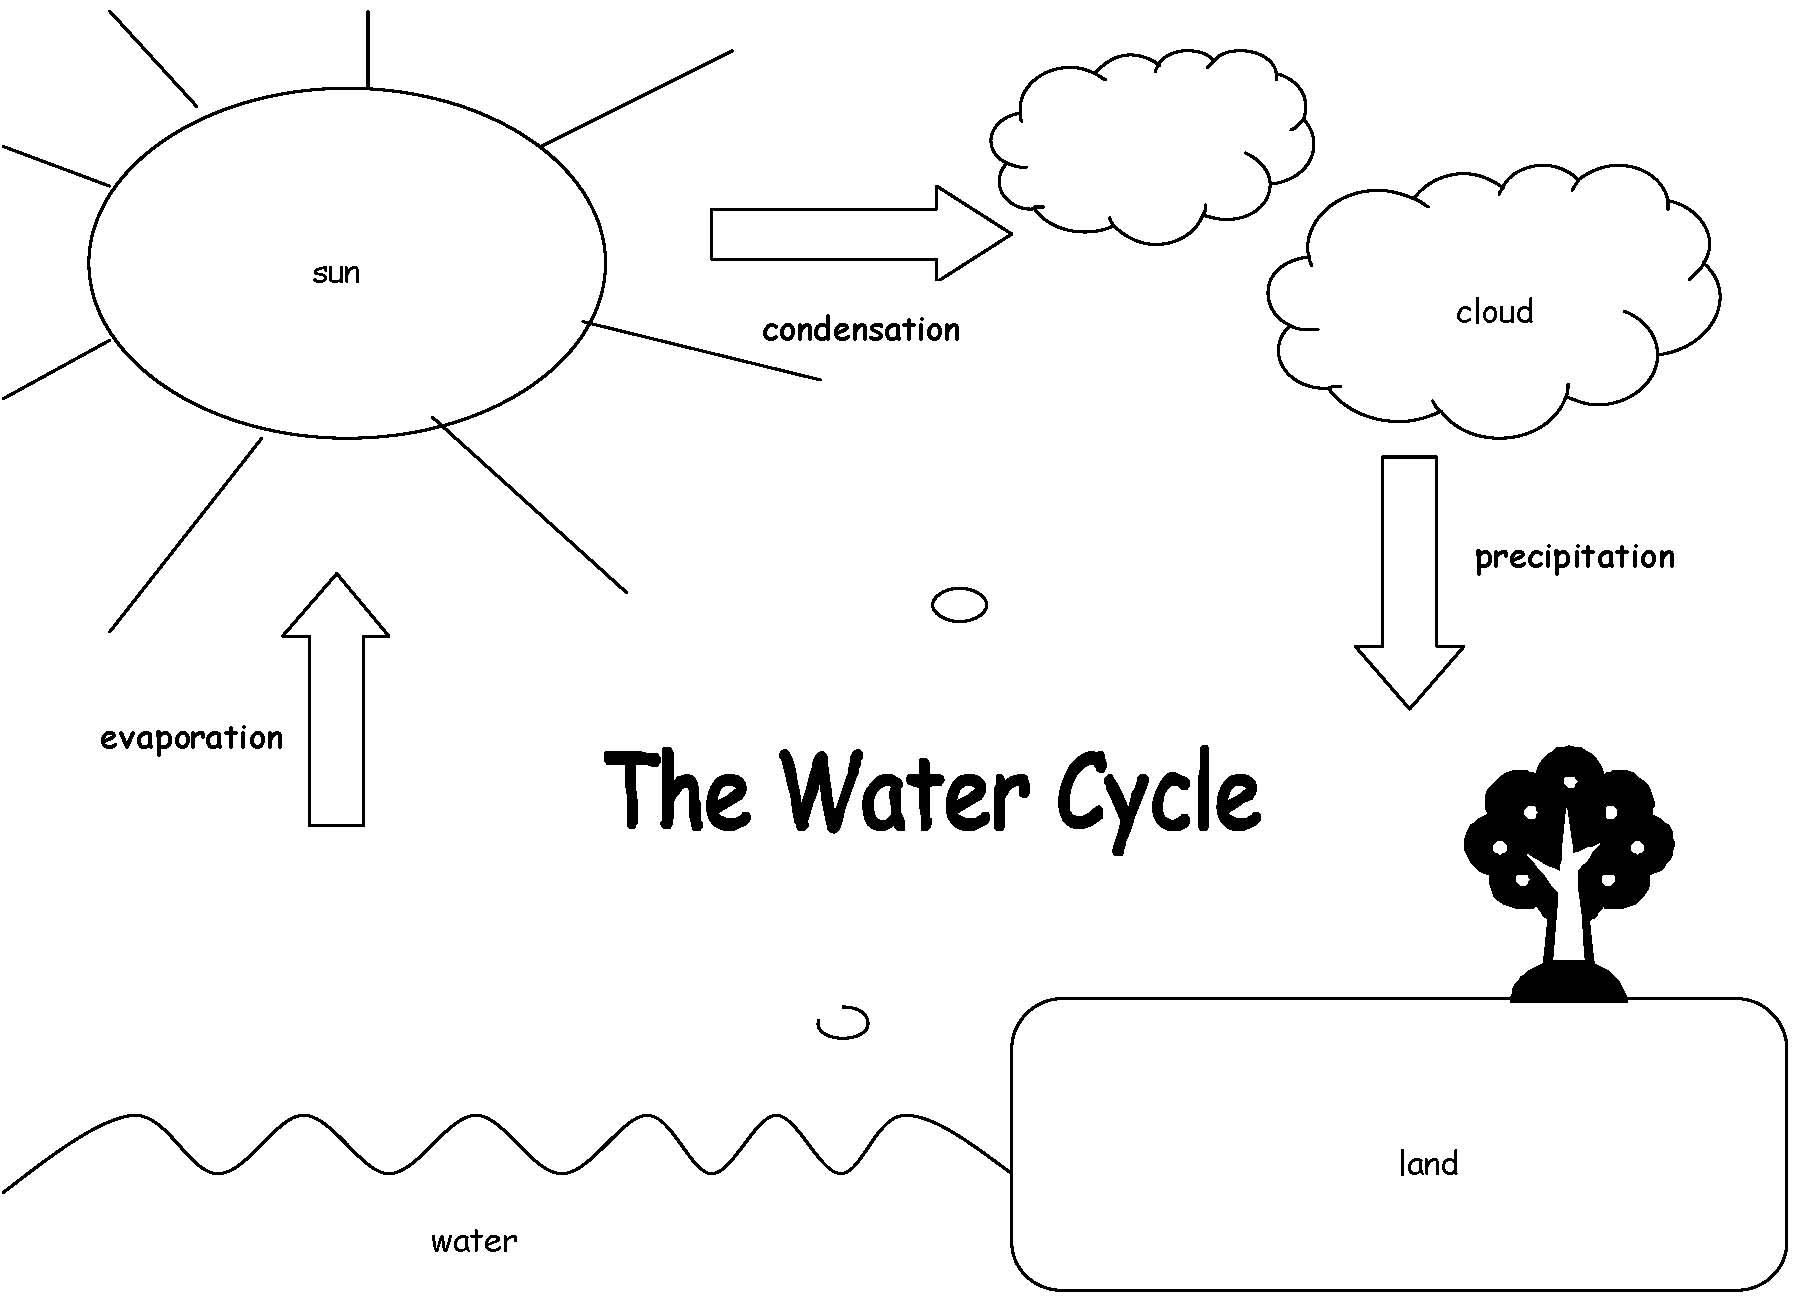 images about water cycle on pinterest   water cycle        images about water cycle on pinterest   water cycle  worksheets and colouring in